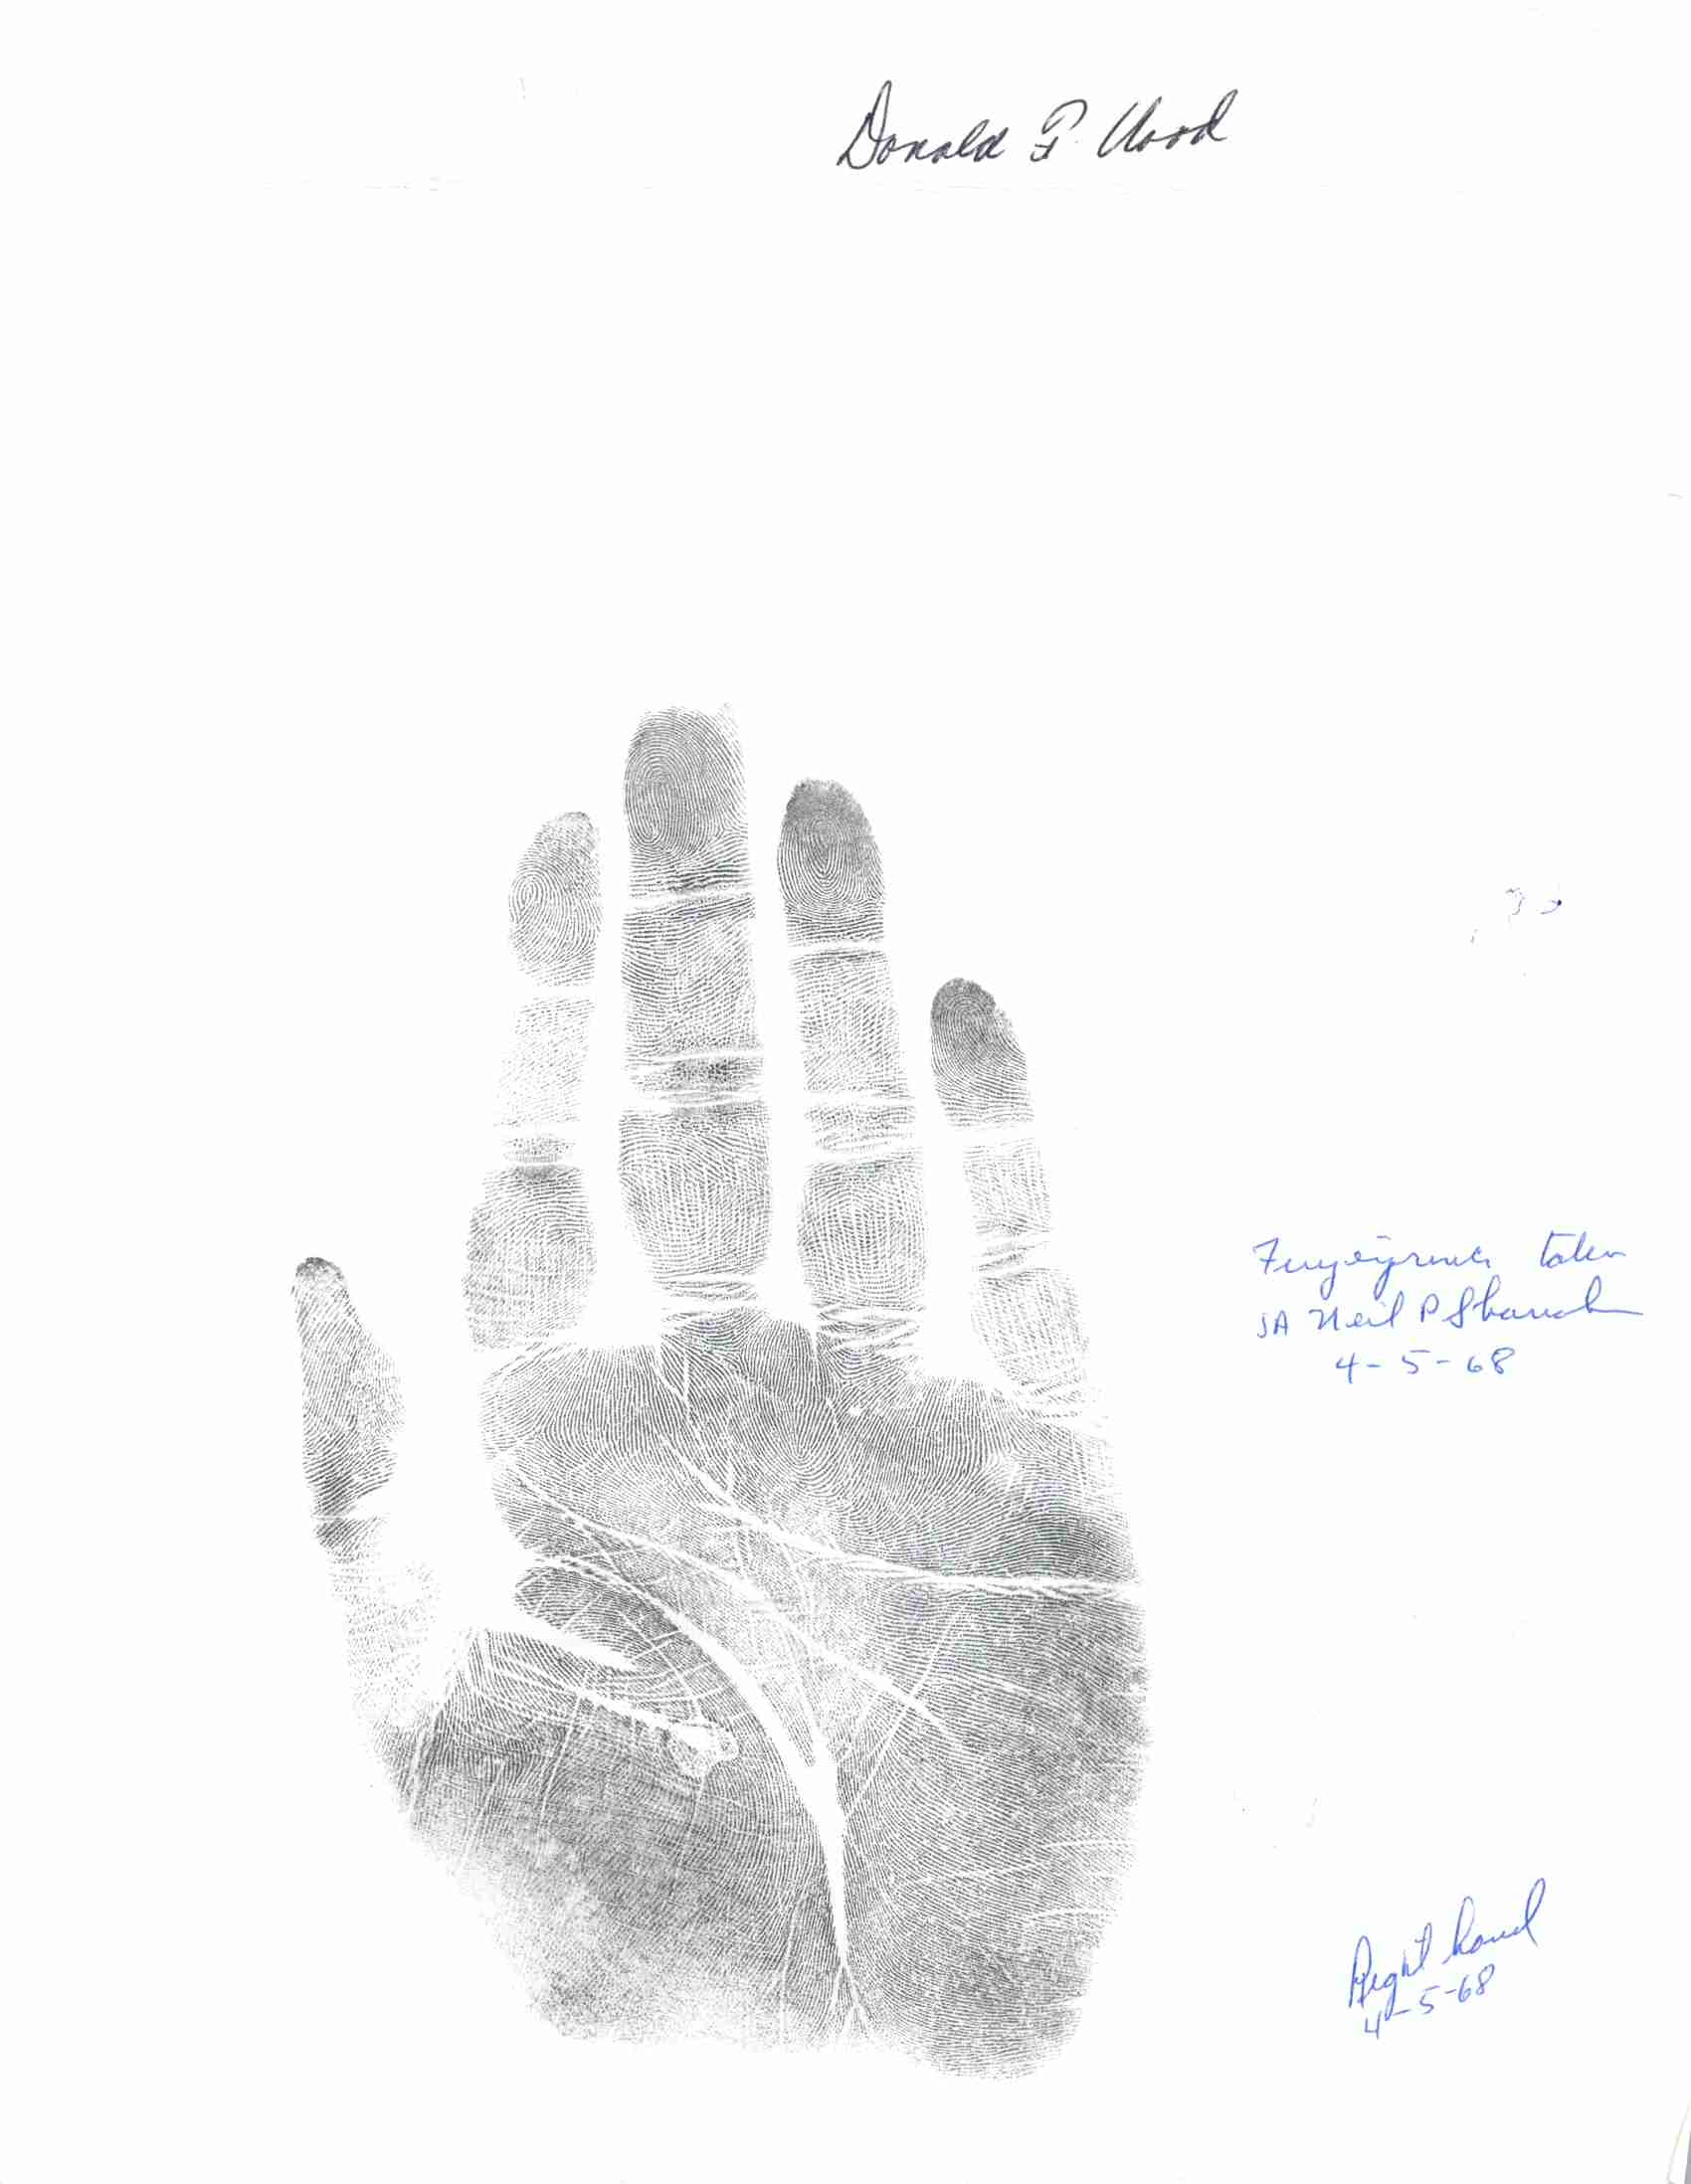 donald f. wood right palm print.jpg